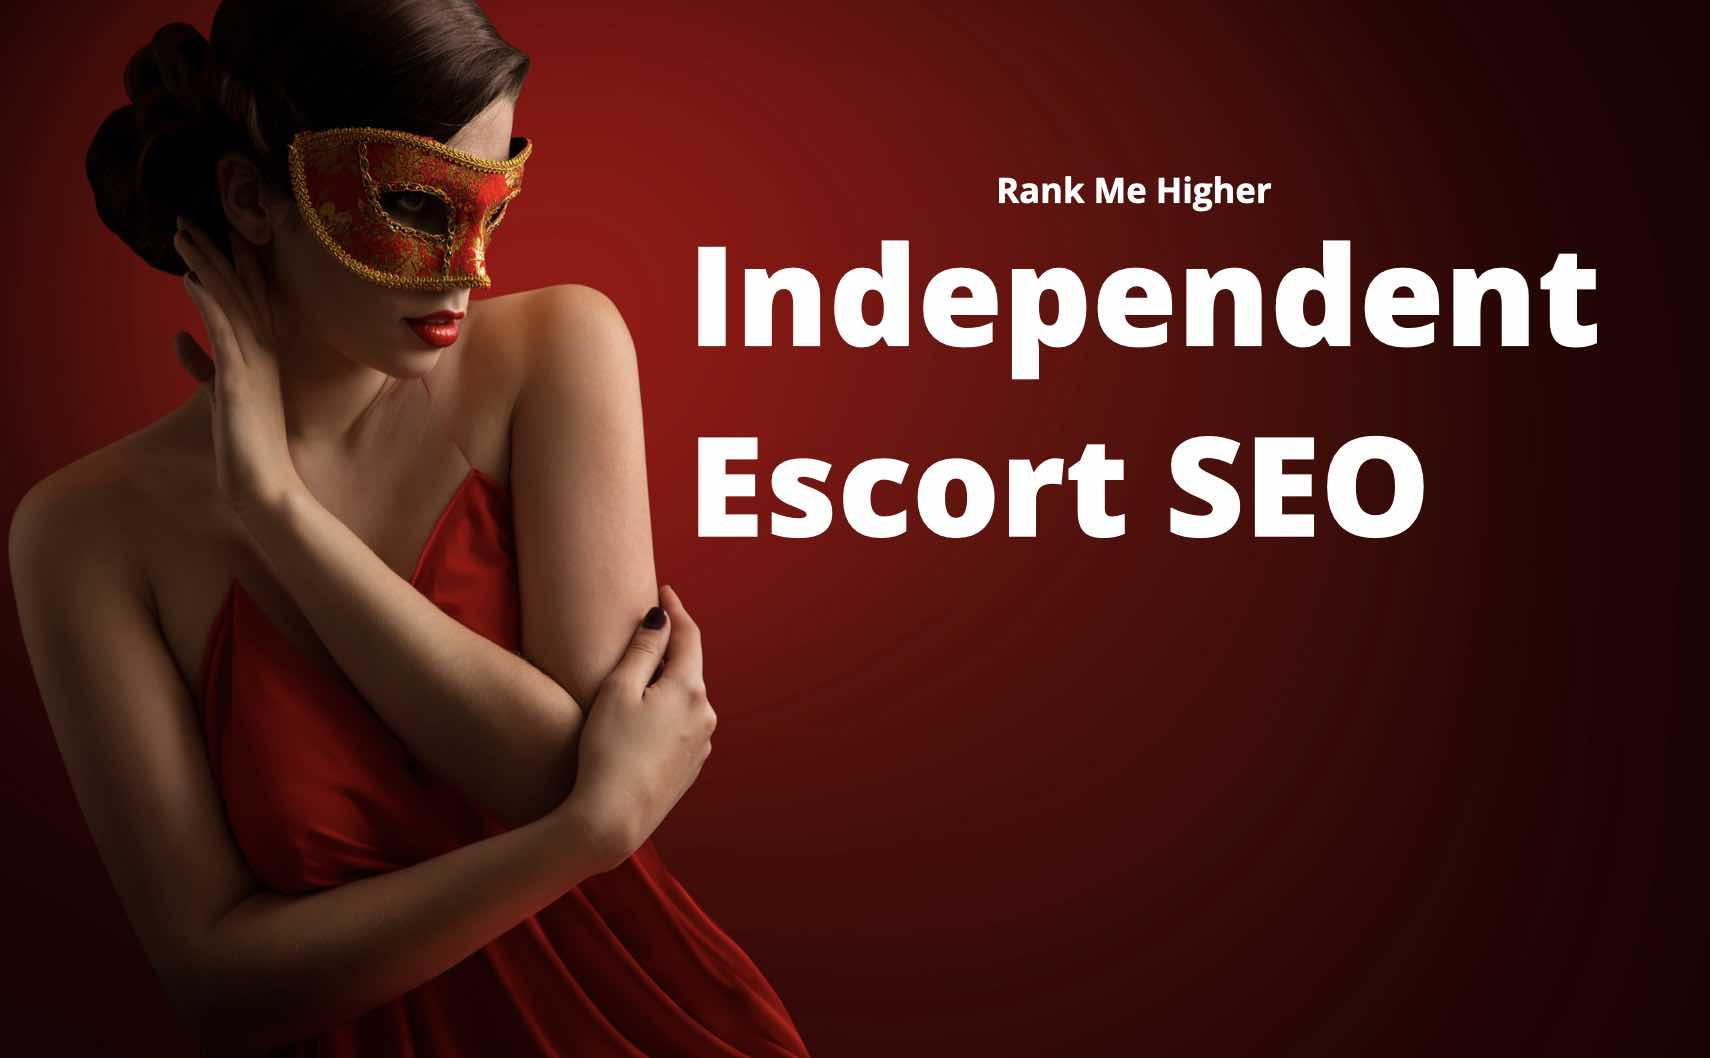 Services d'escorte SEO